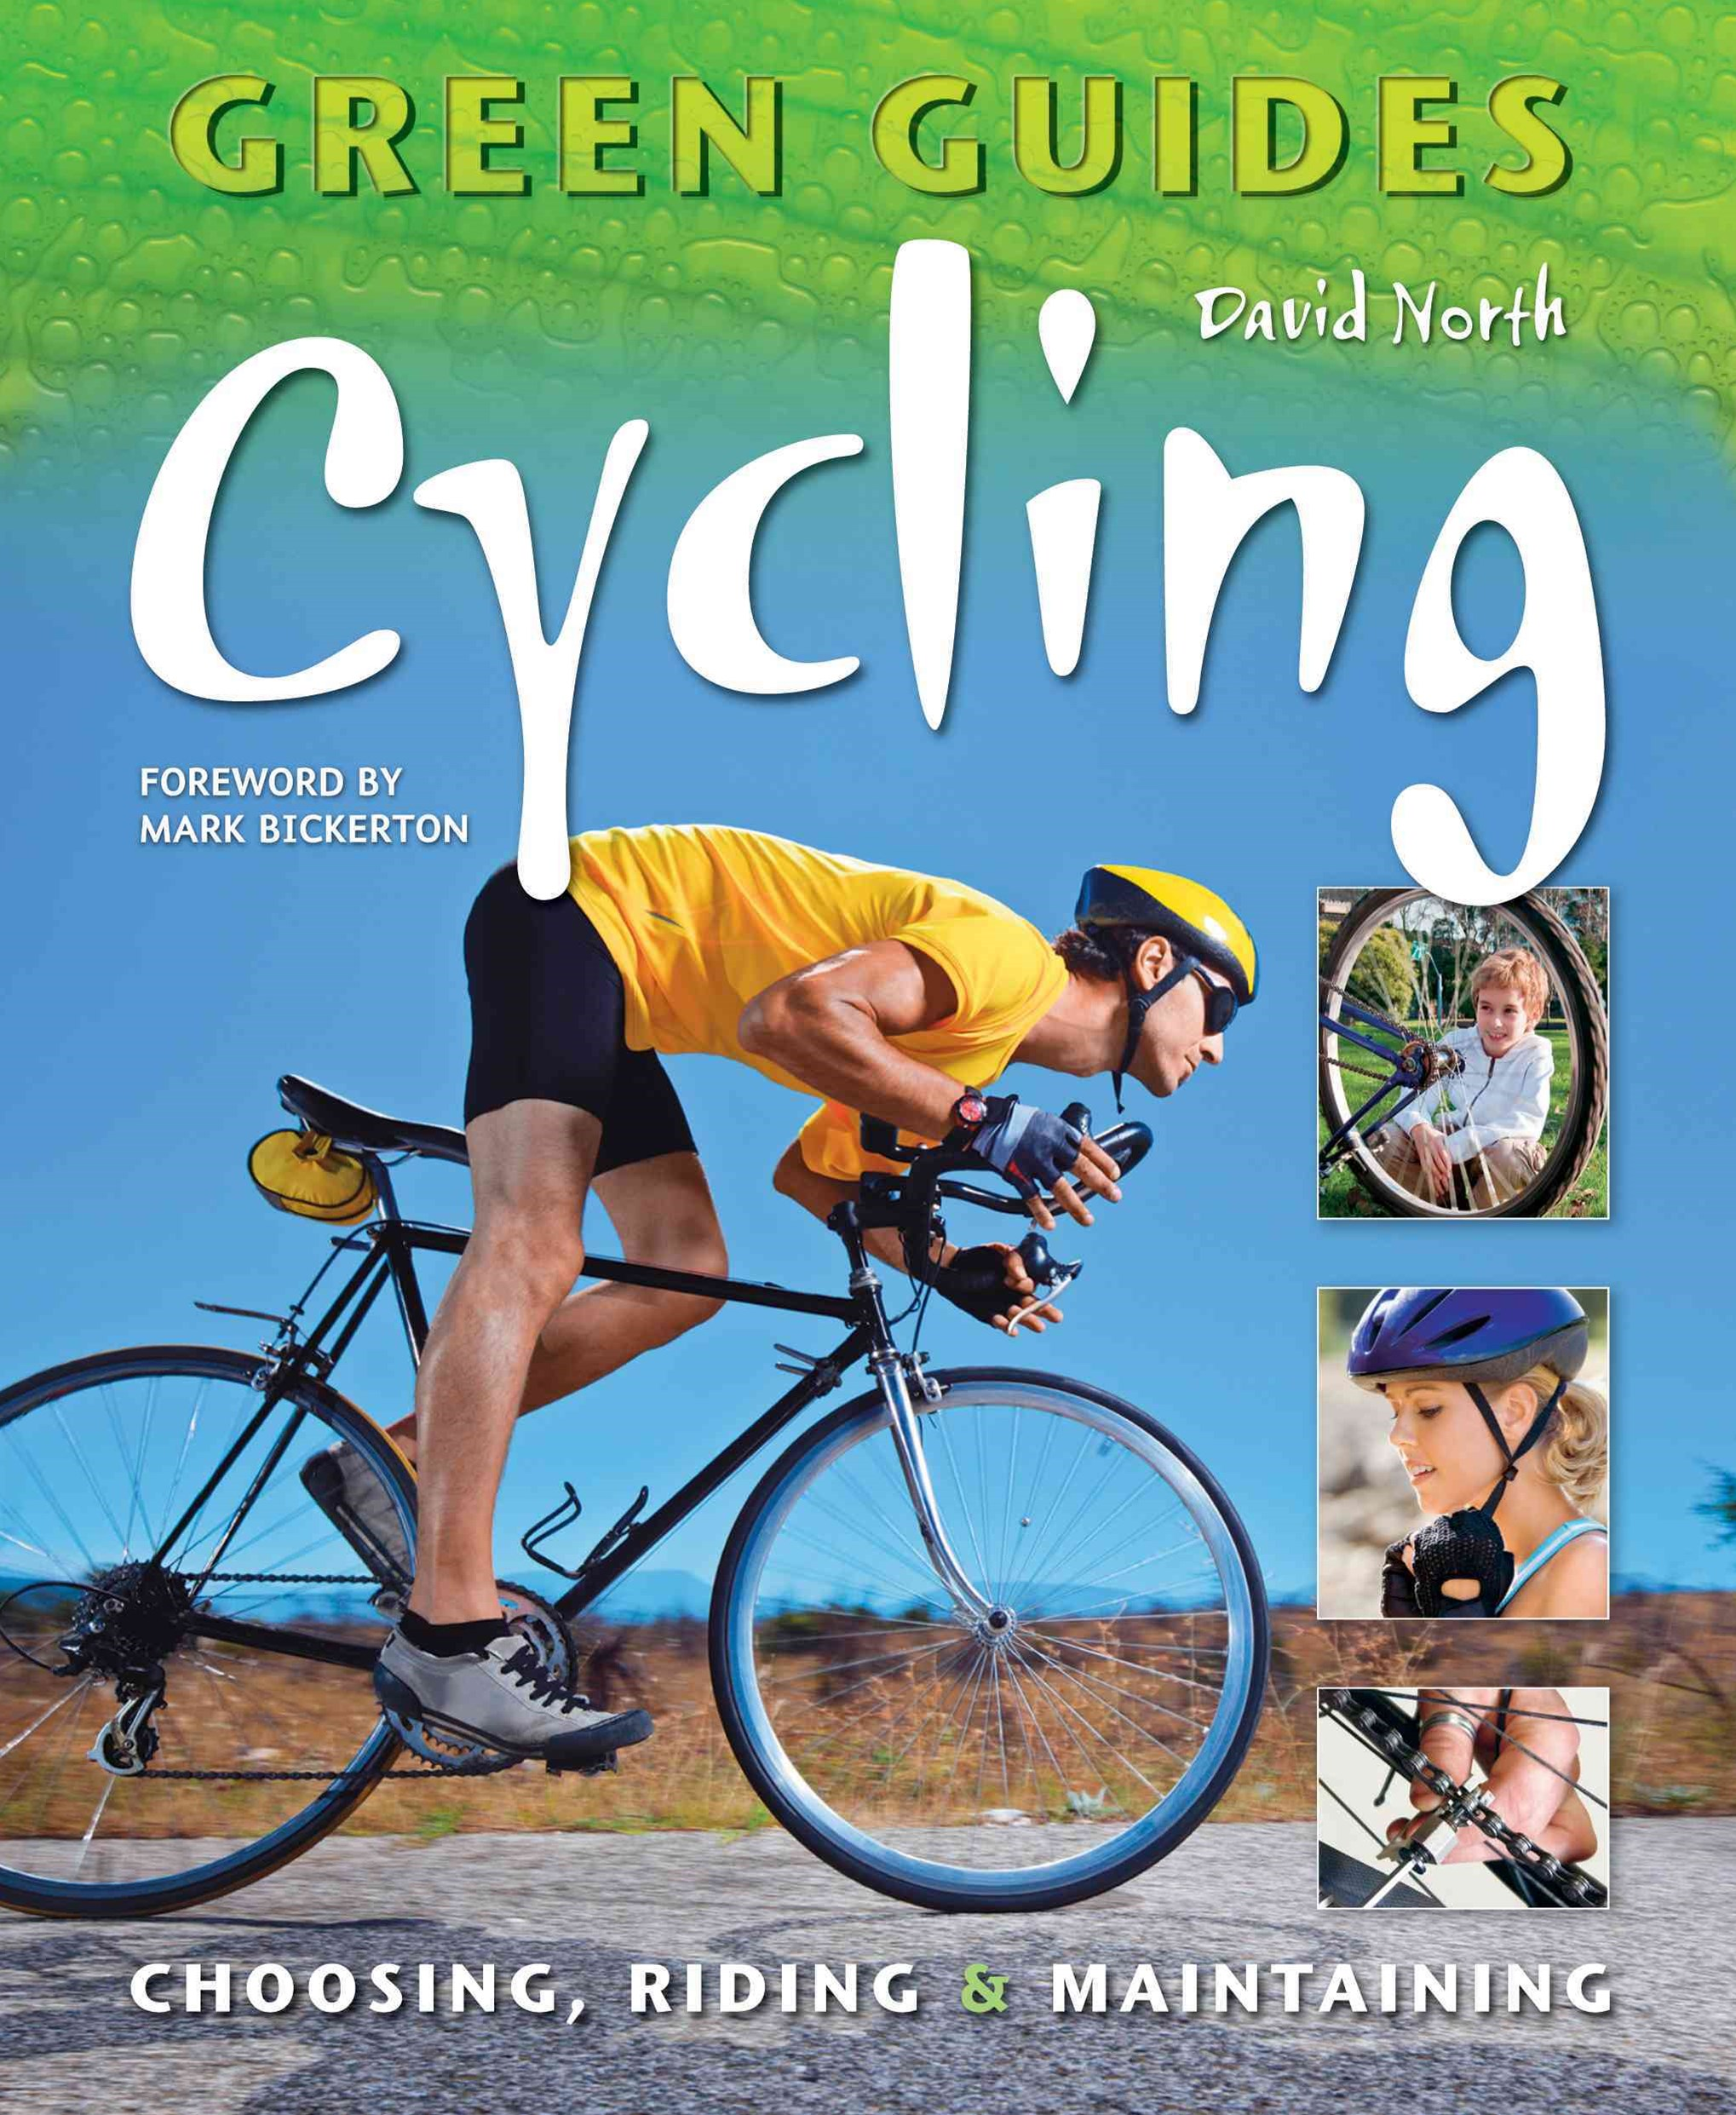 Green Guides: Cycling